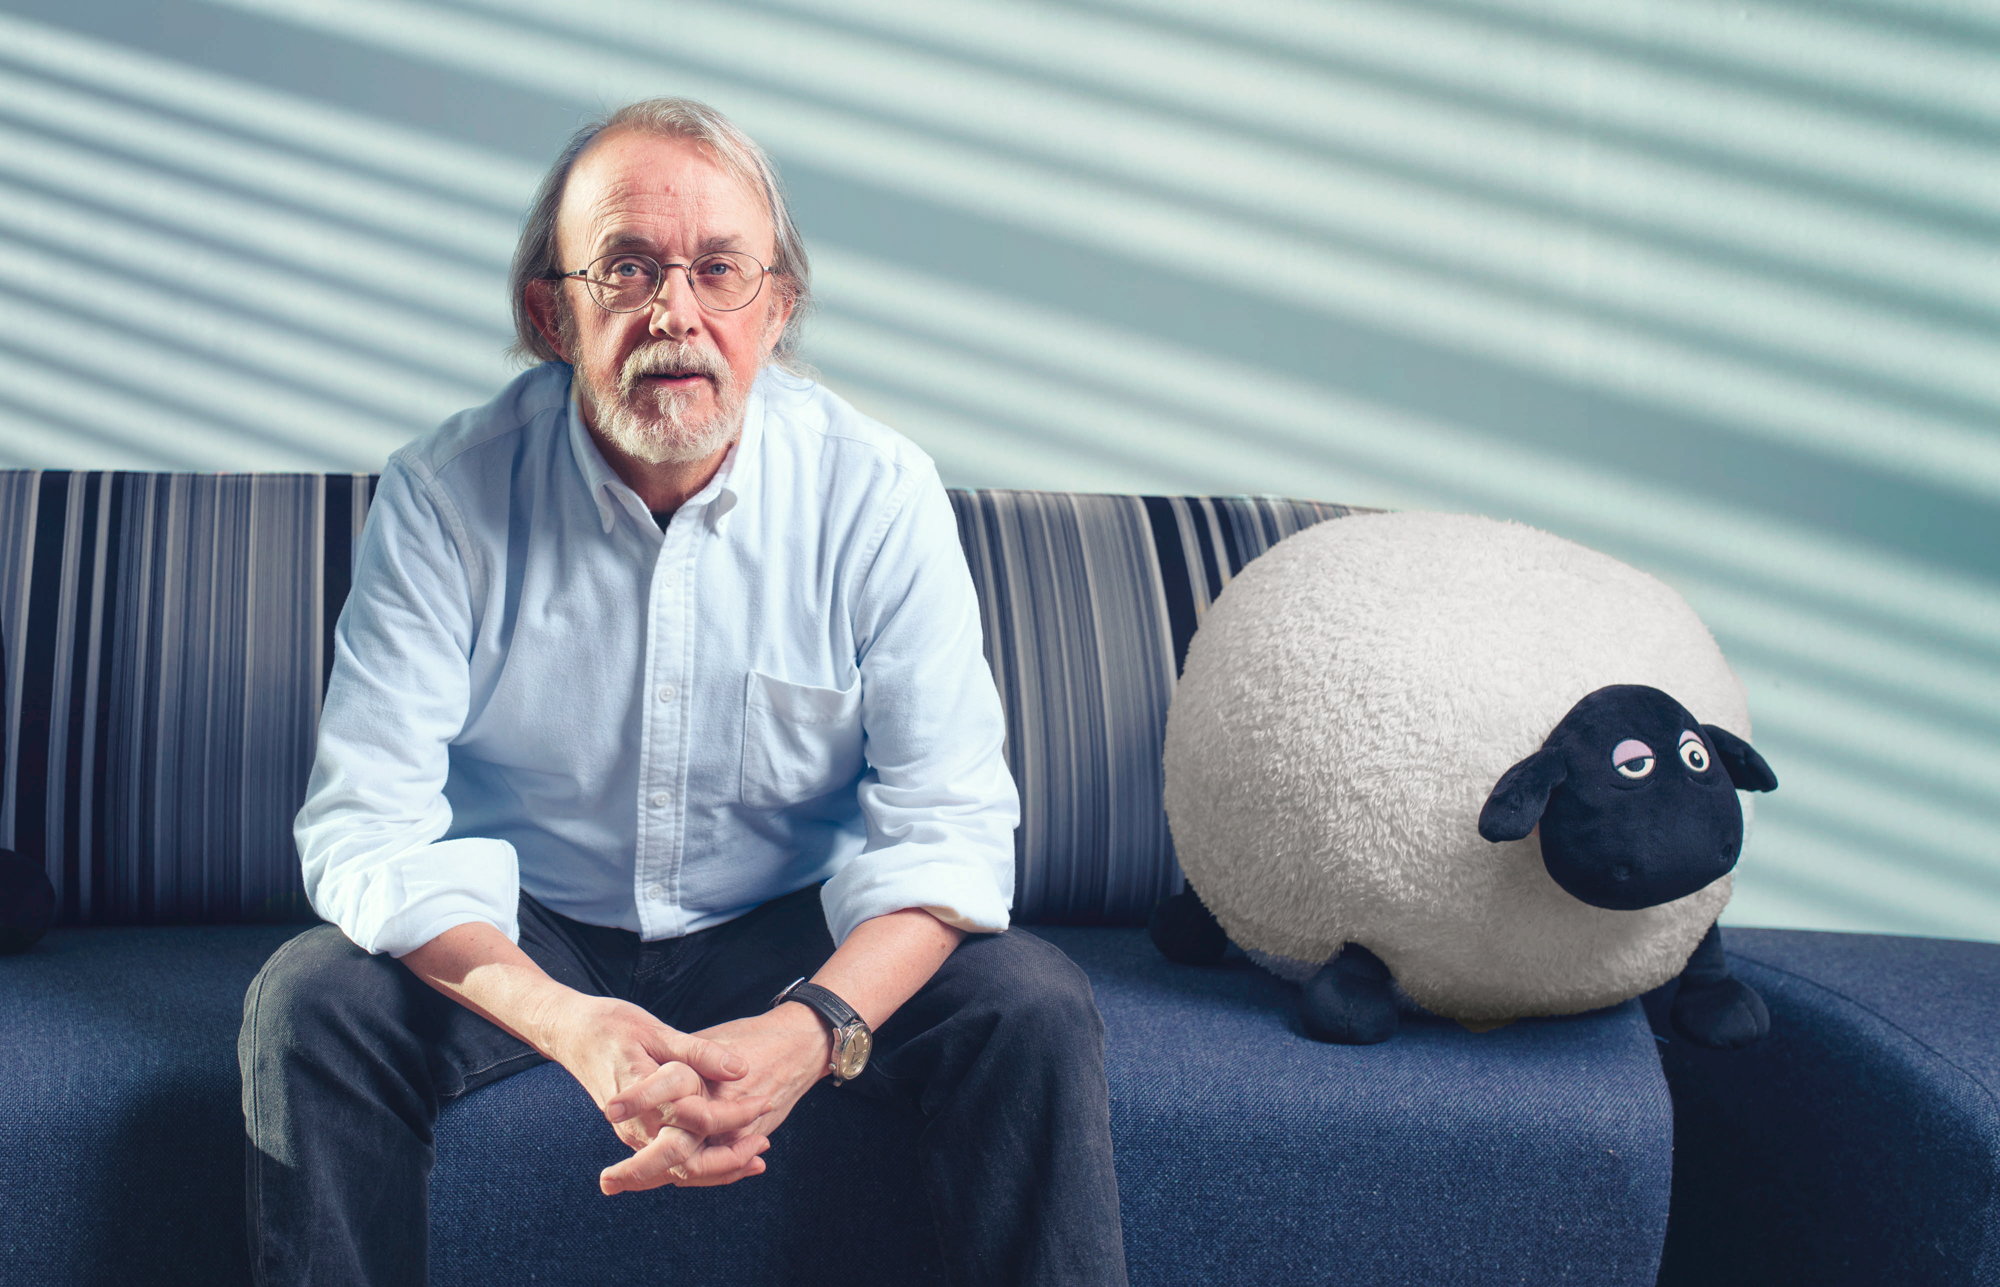 Peter Lord Photographed at Aardman Animations HQ in Bristol.